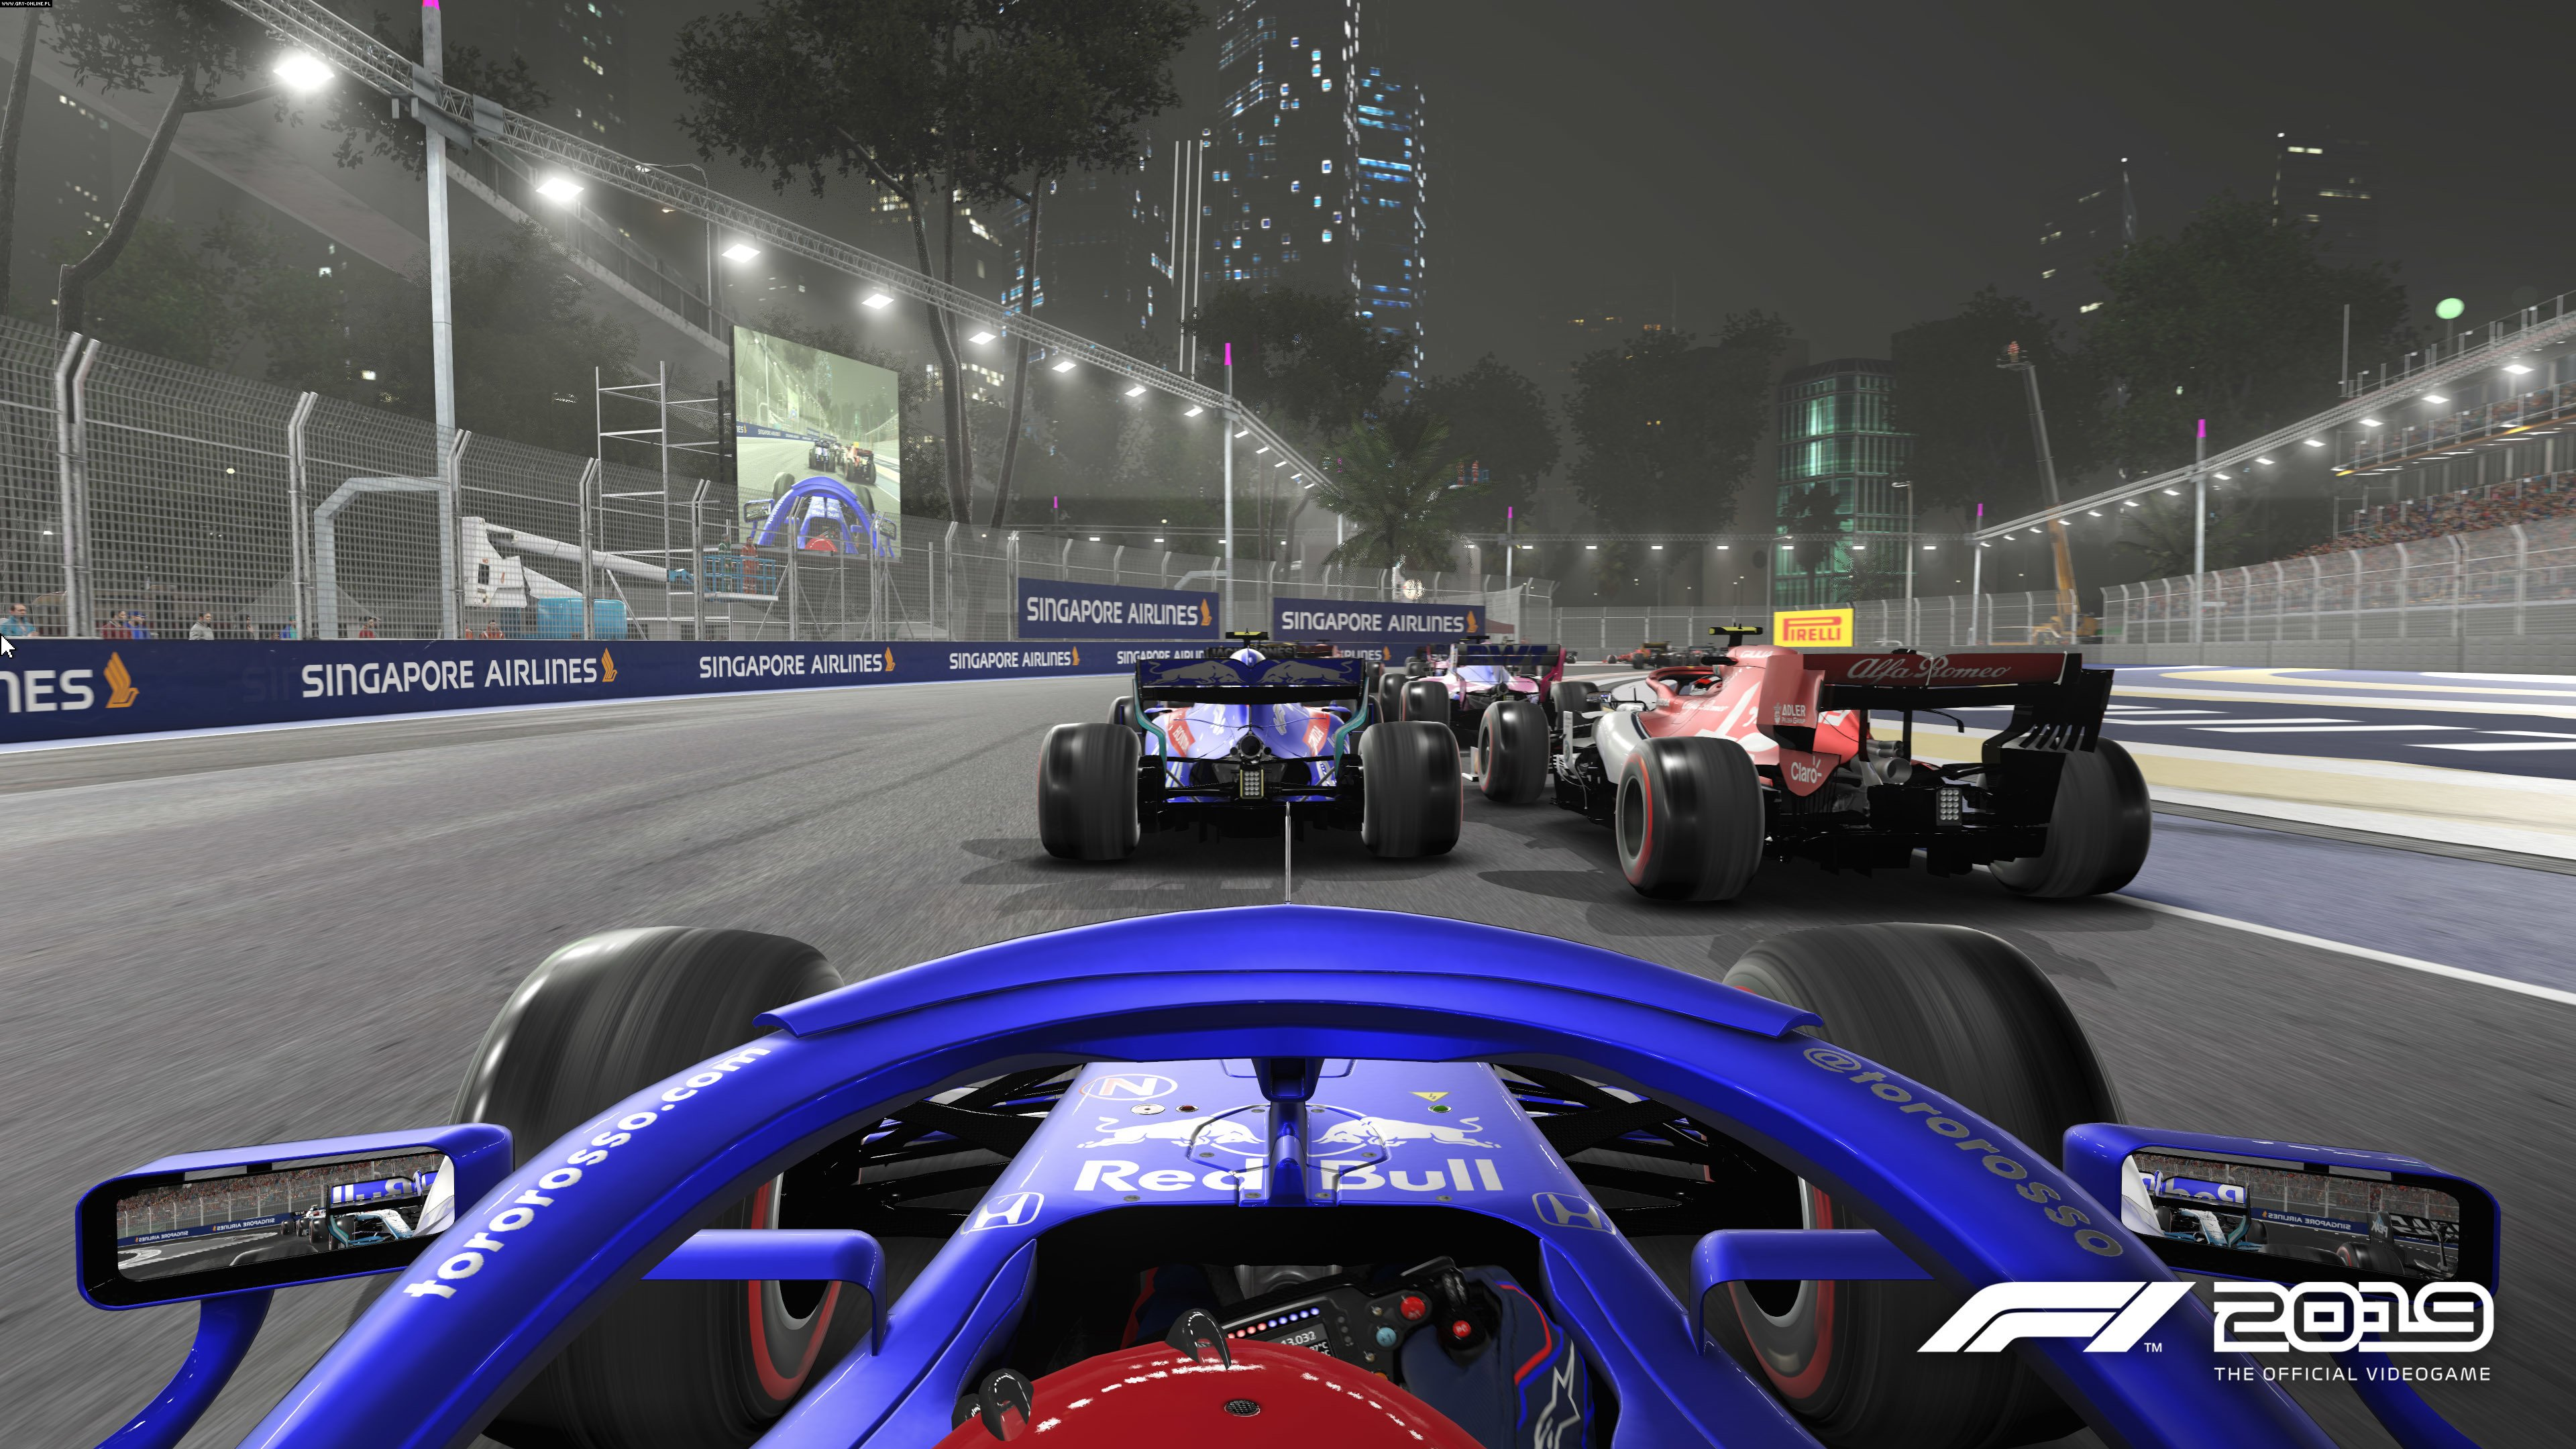 F1 2019 PC, PS4, XONE Games Image 13/62, Codemasters Software